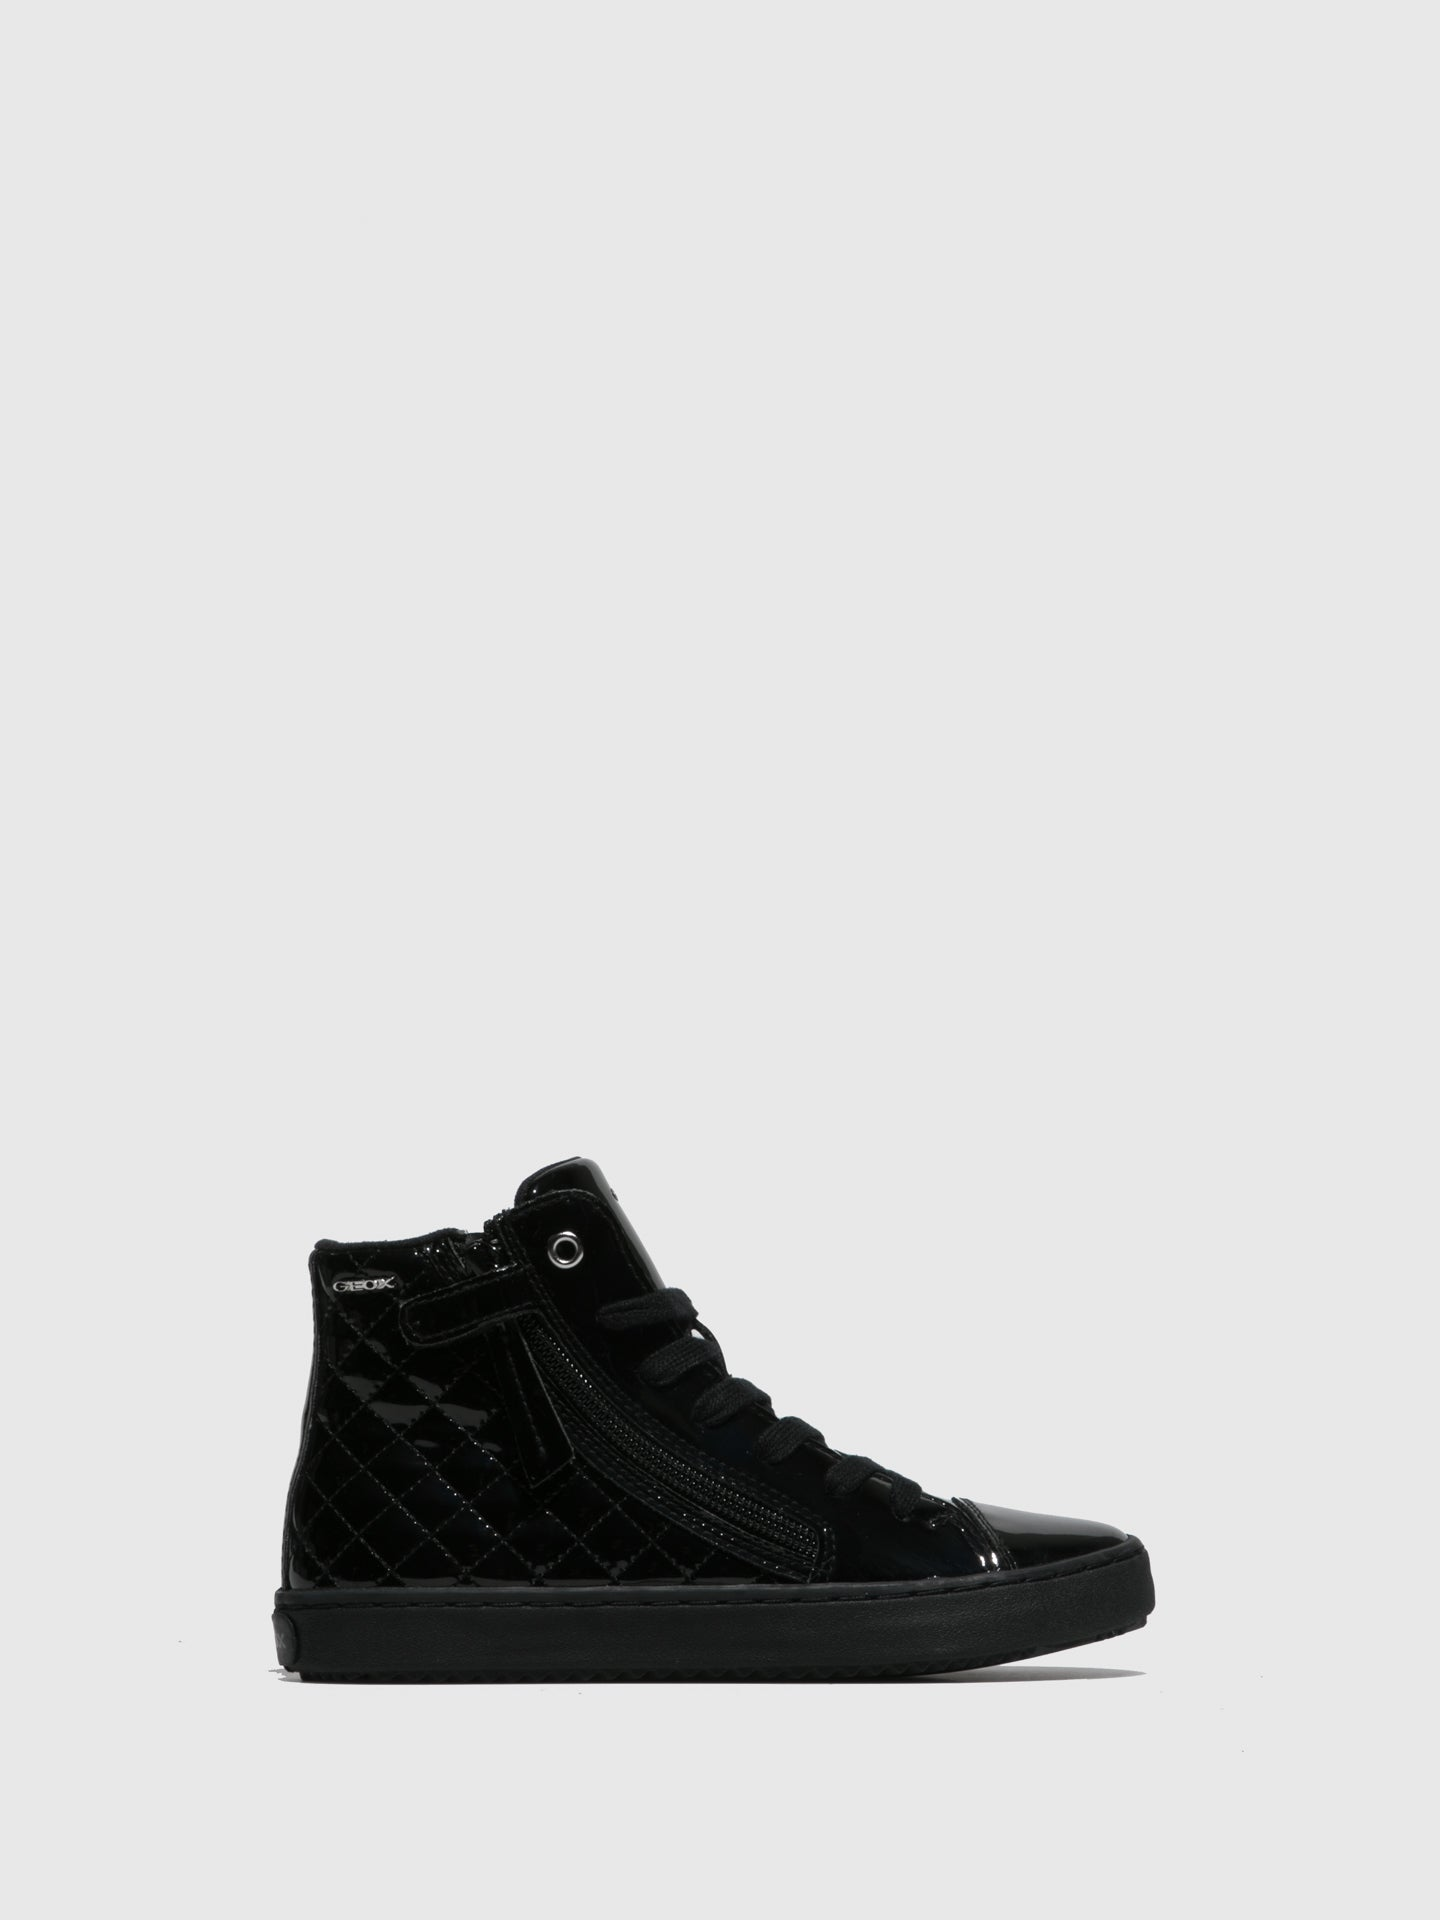 Geox Black Zip Up Trainers